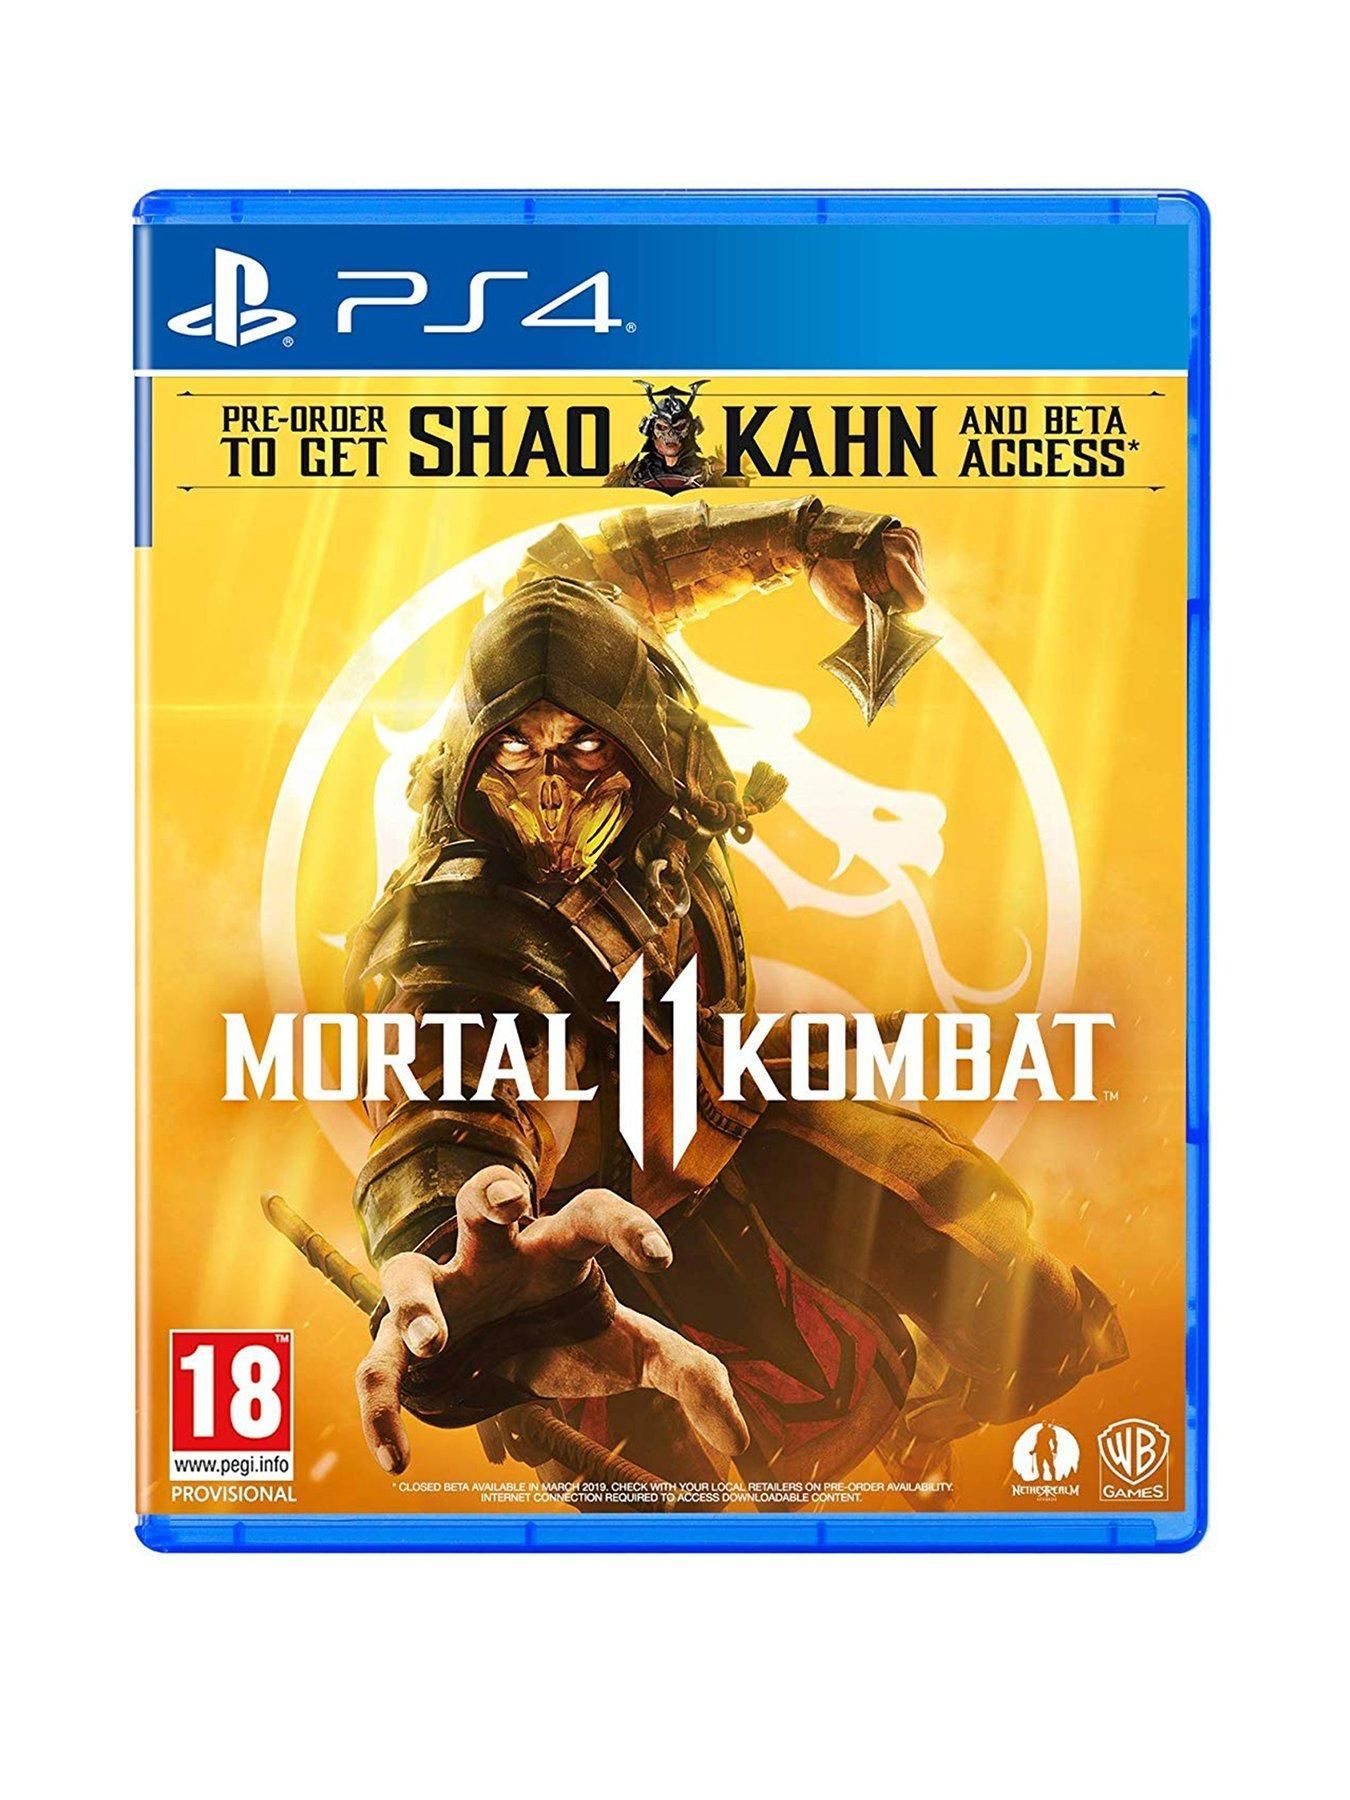 Playstation 4 Mortal Kombat 11 Ps4 In One Colour Mortal Kombat